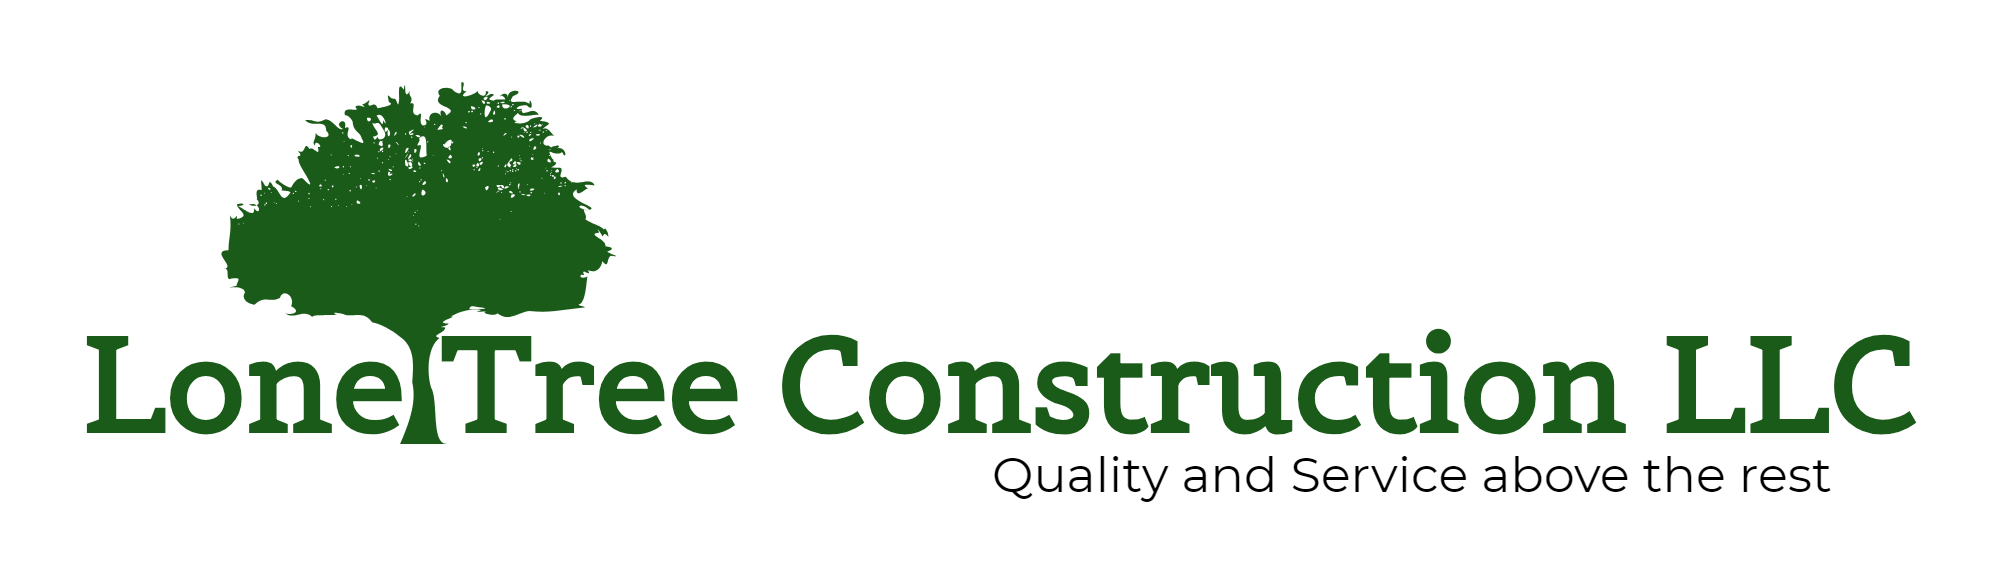 Lone Tree Construction LLC-logo (3).png